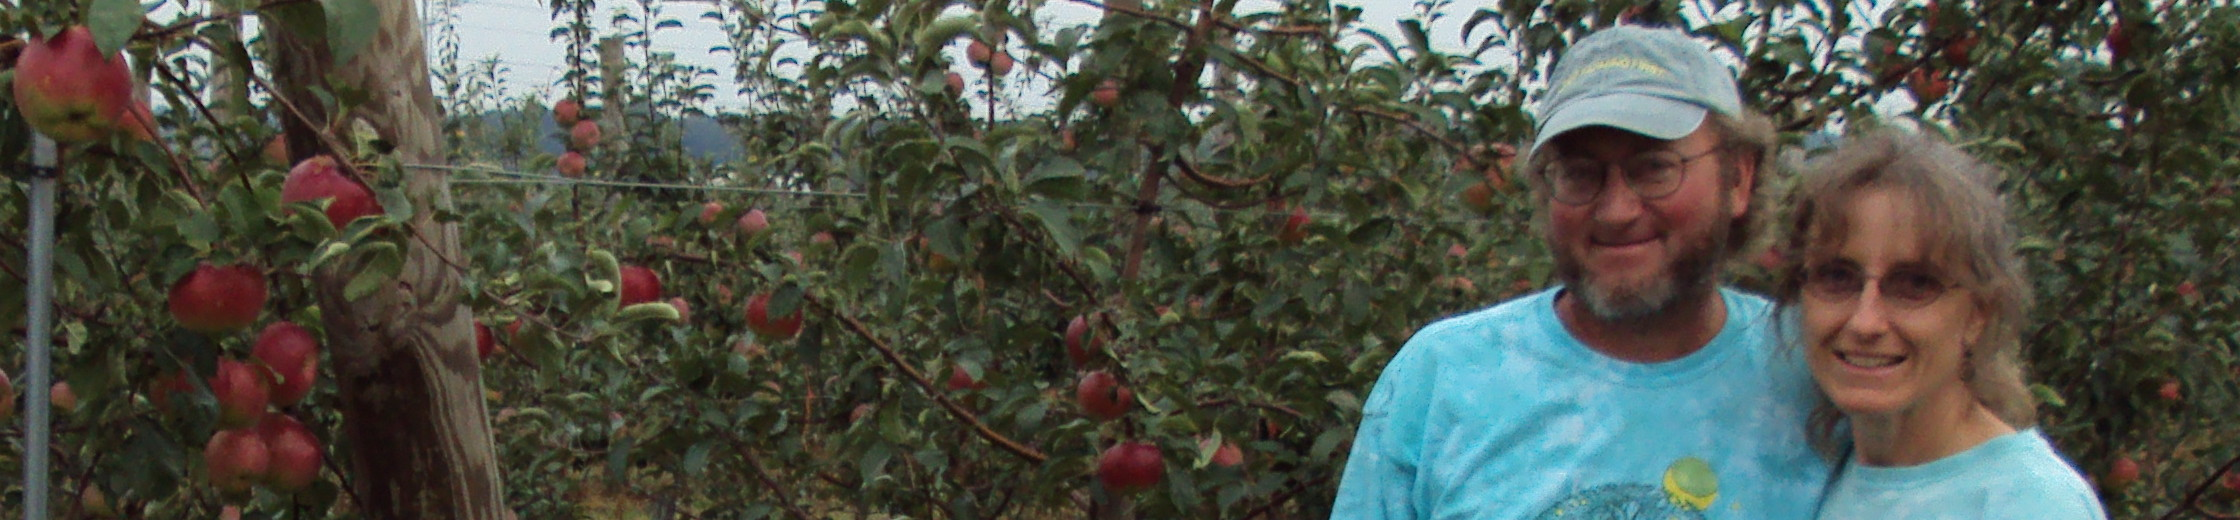 Fruit Geeks- Lisa Kershner from North Star Orchard